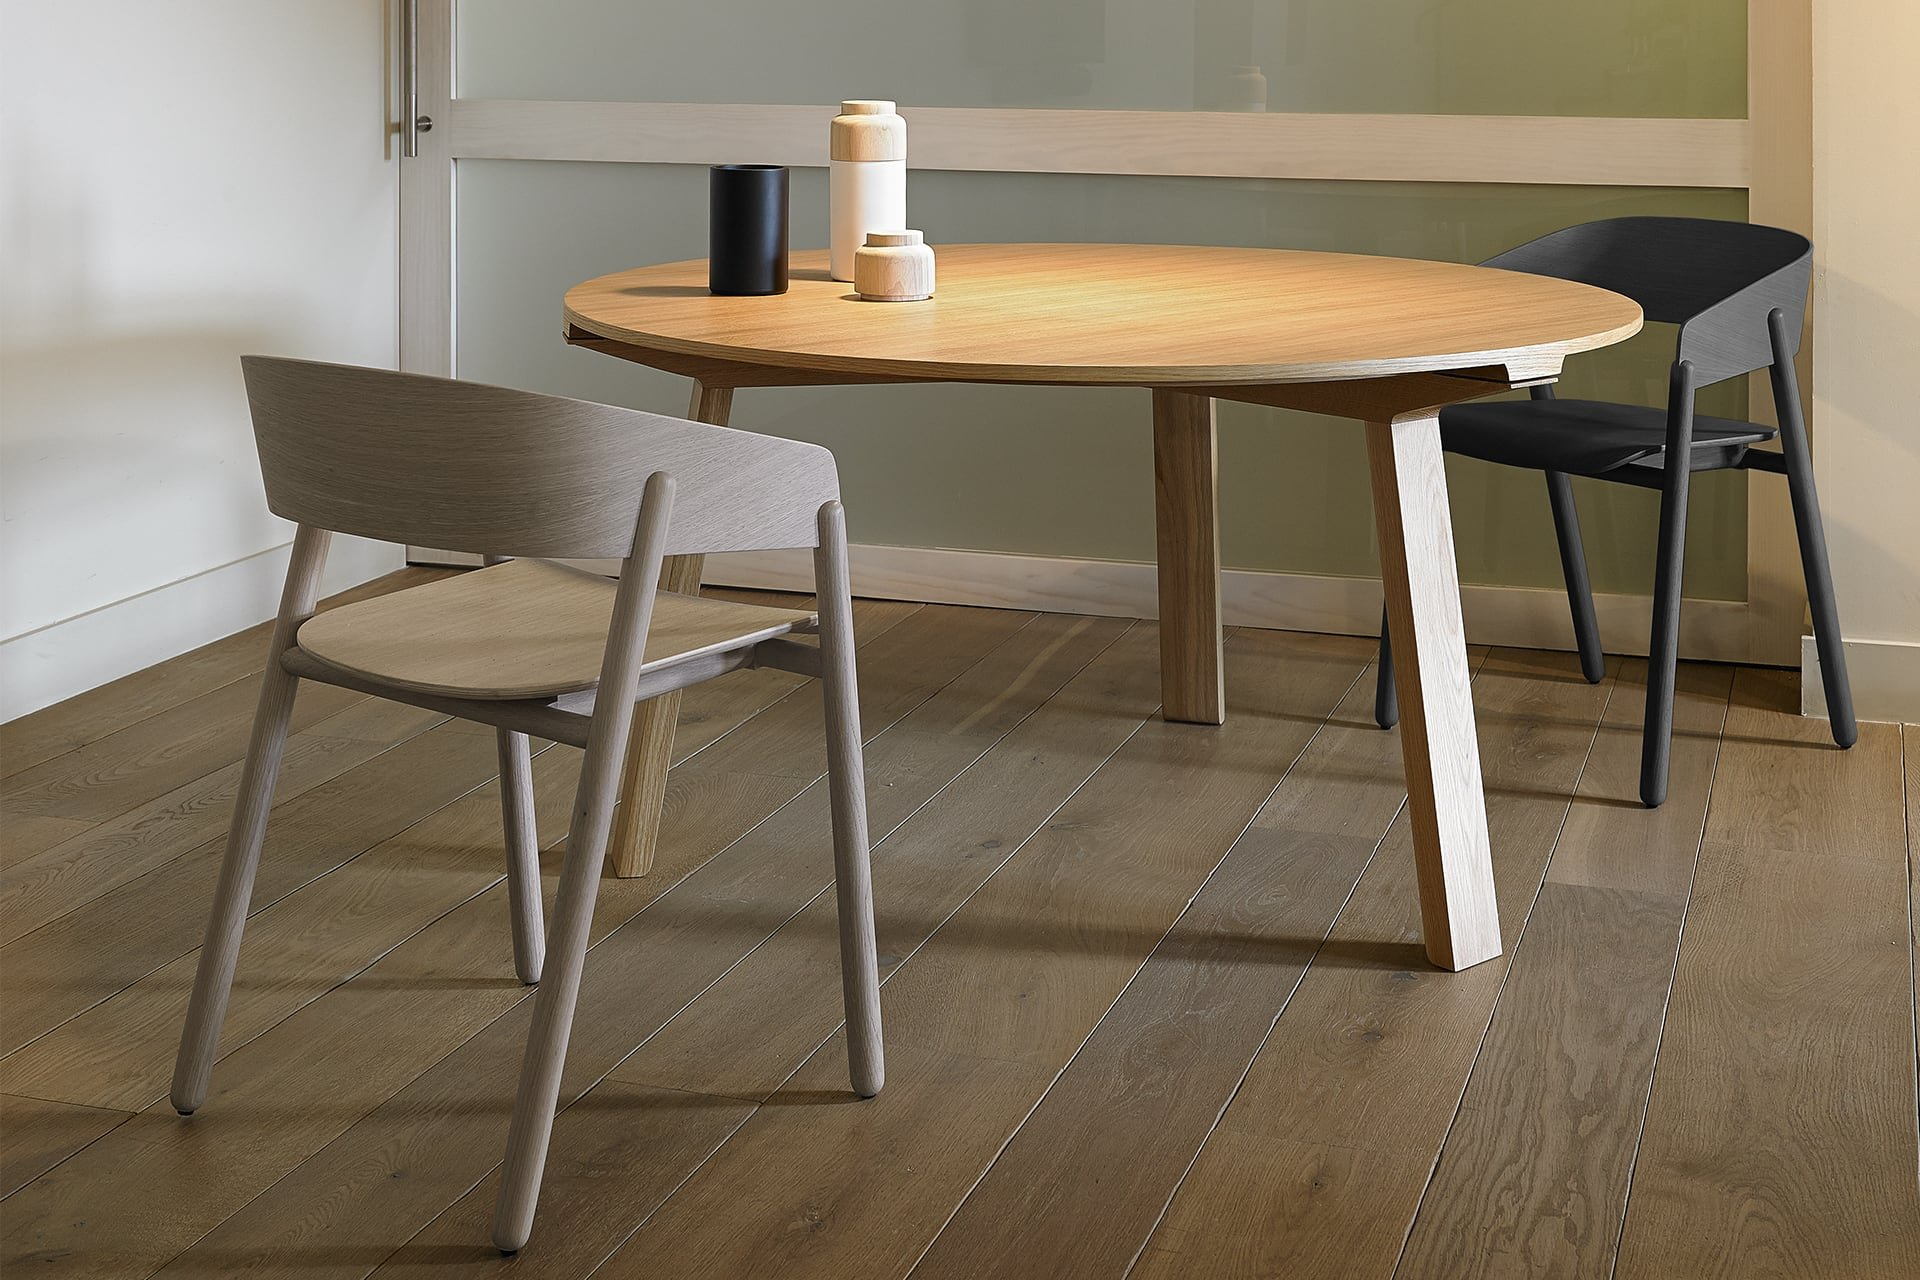 Mitis Wood Dining Table from Punt Mobles